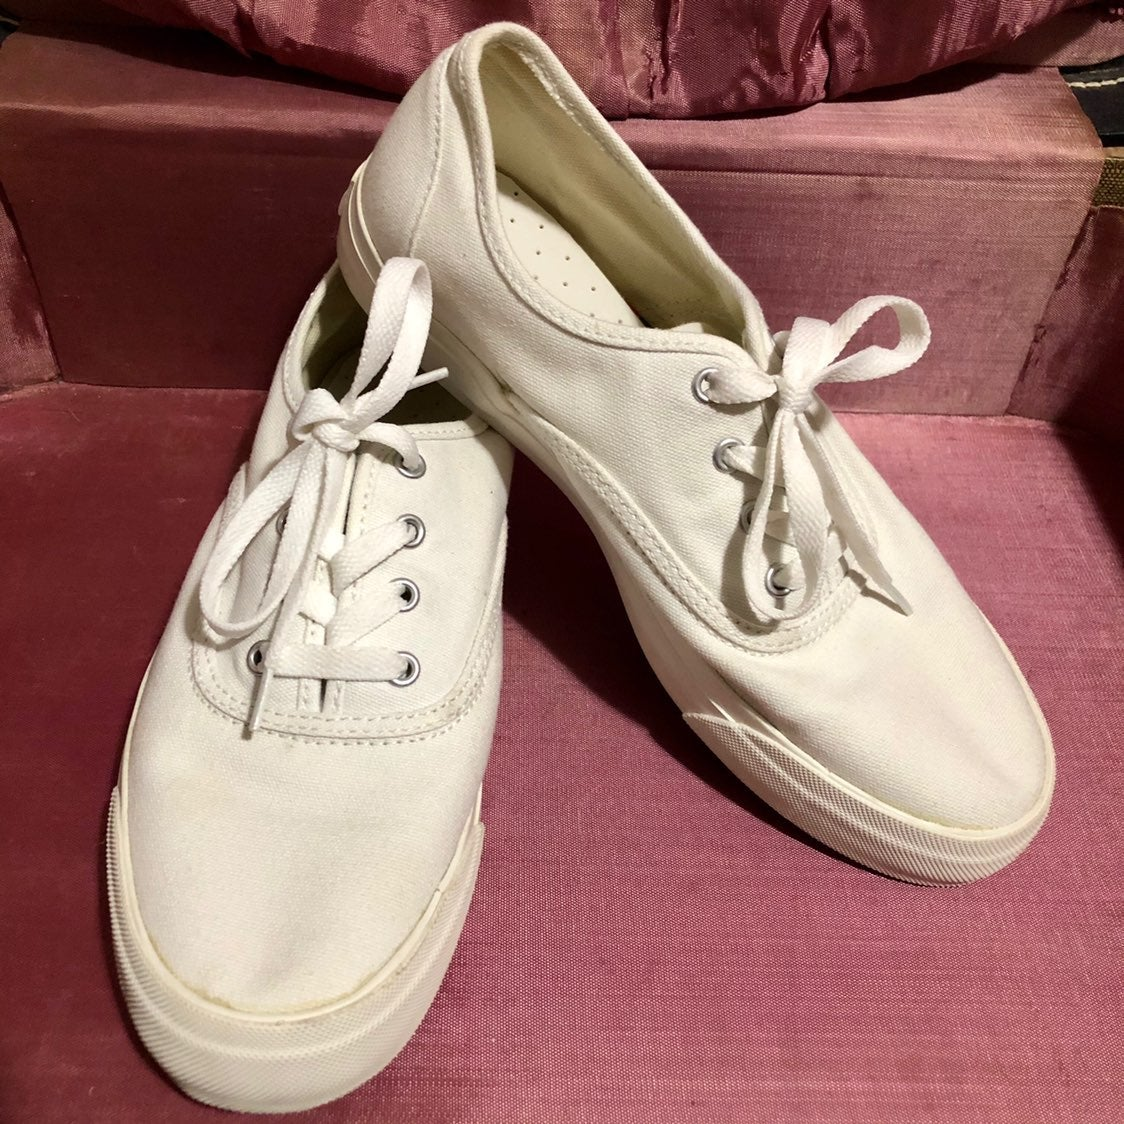 PRO-Keds Lo Athletic Shoes Sneaker White